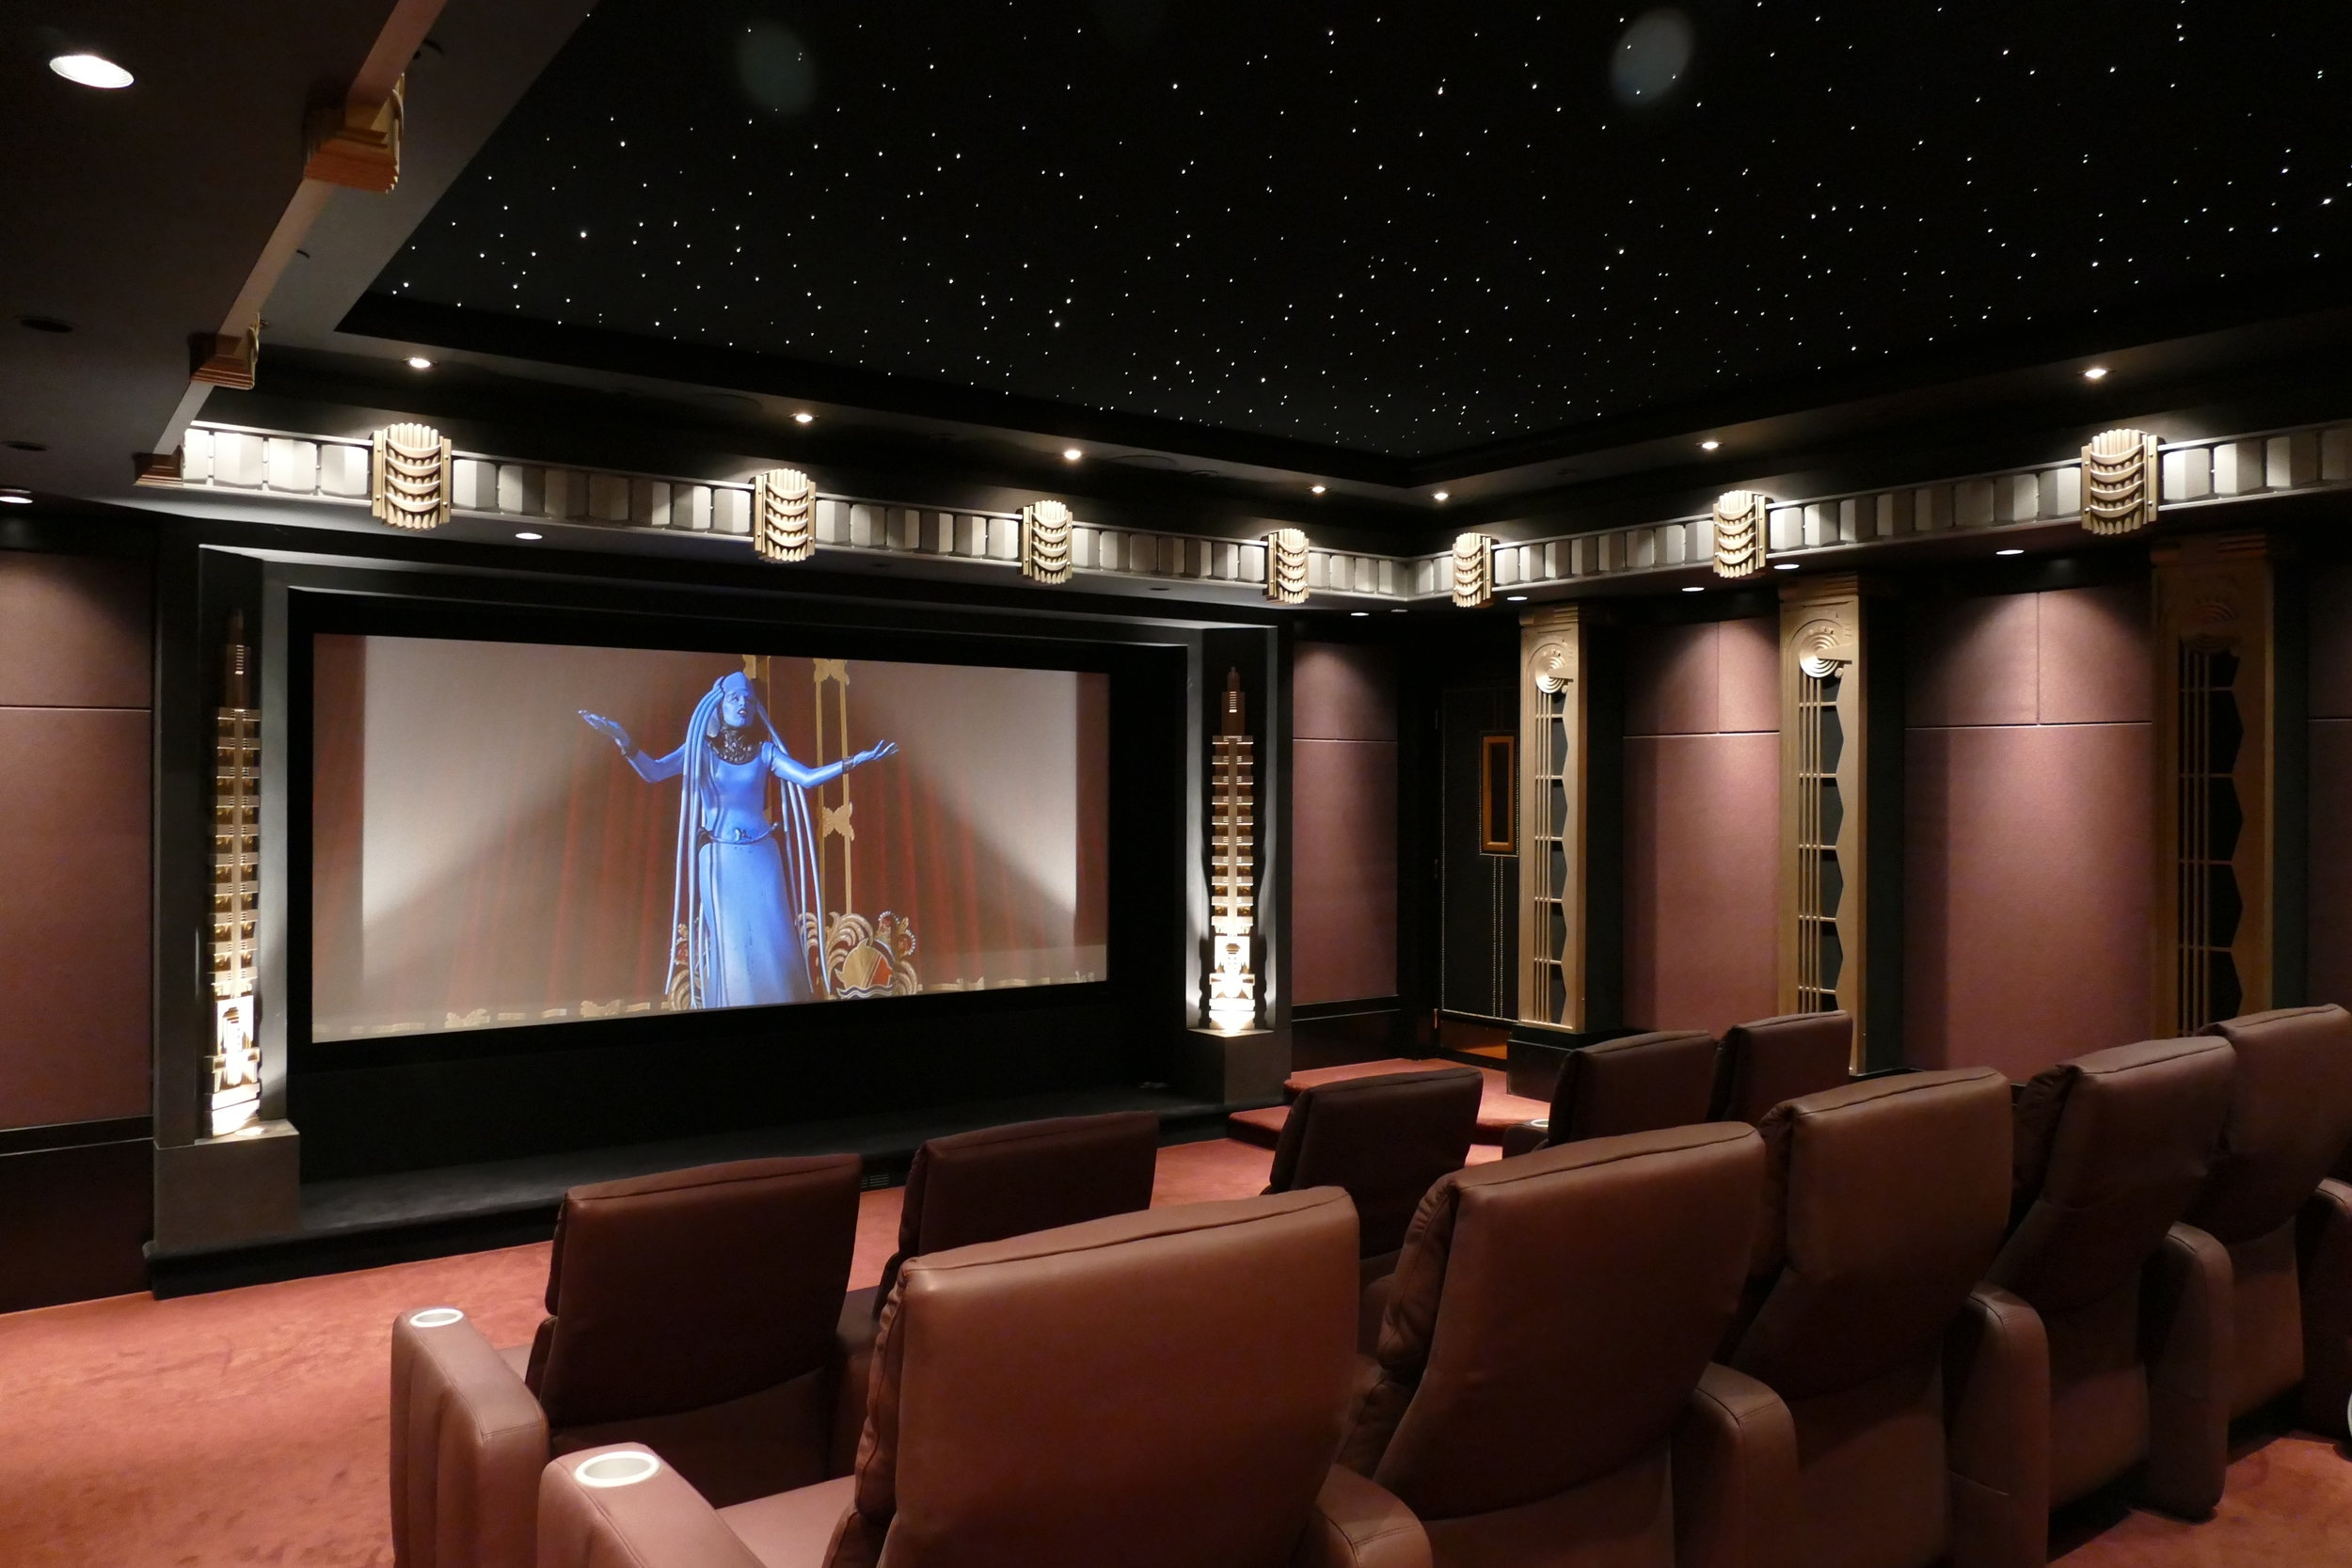 Richly created Theater interiors, high performance technology provide great outcomes